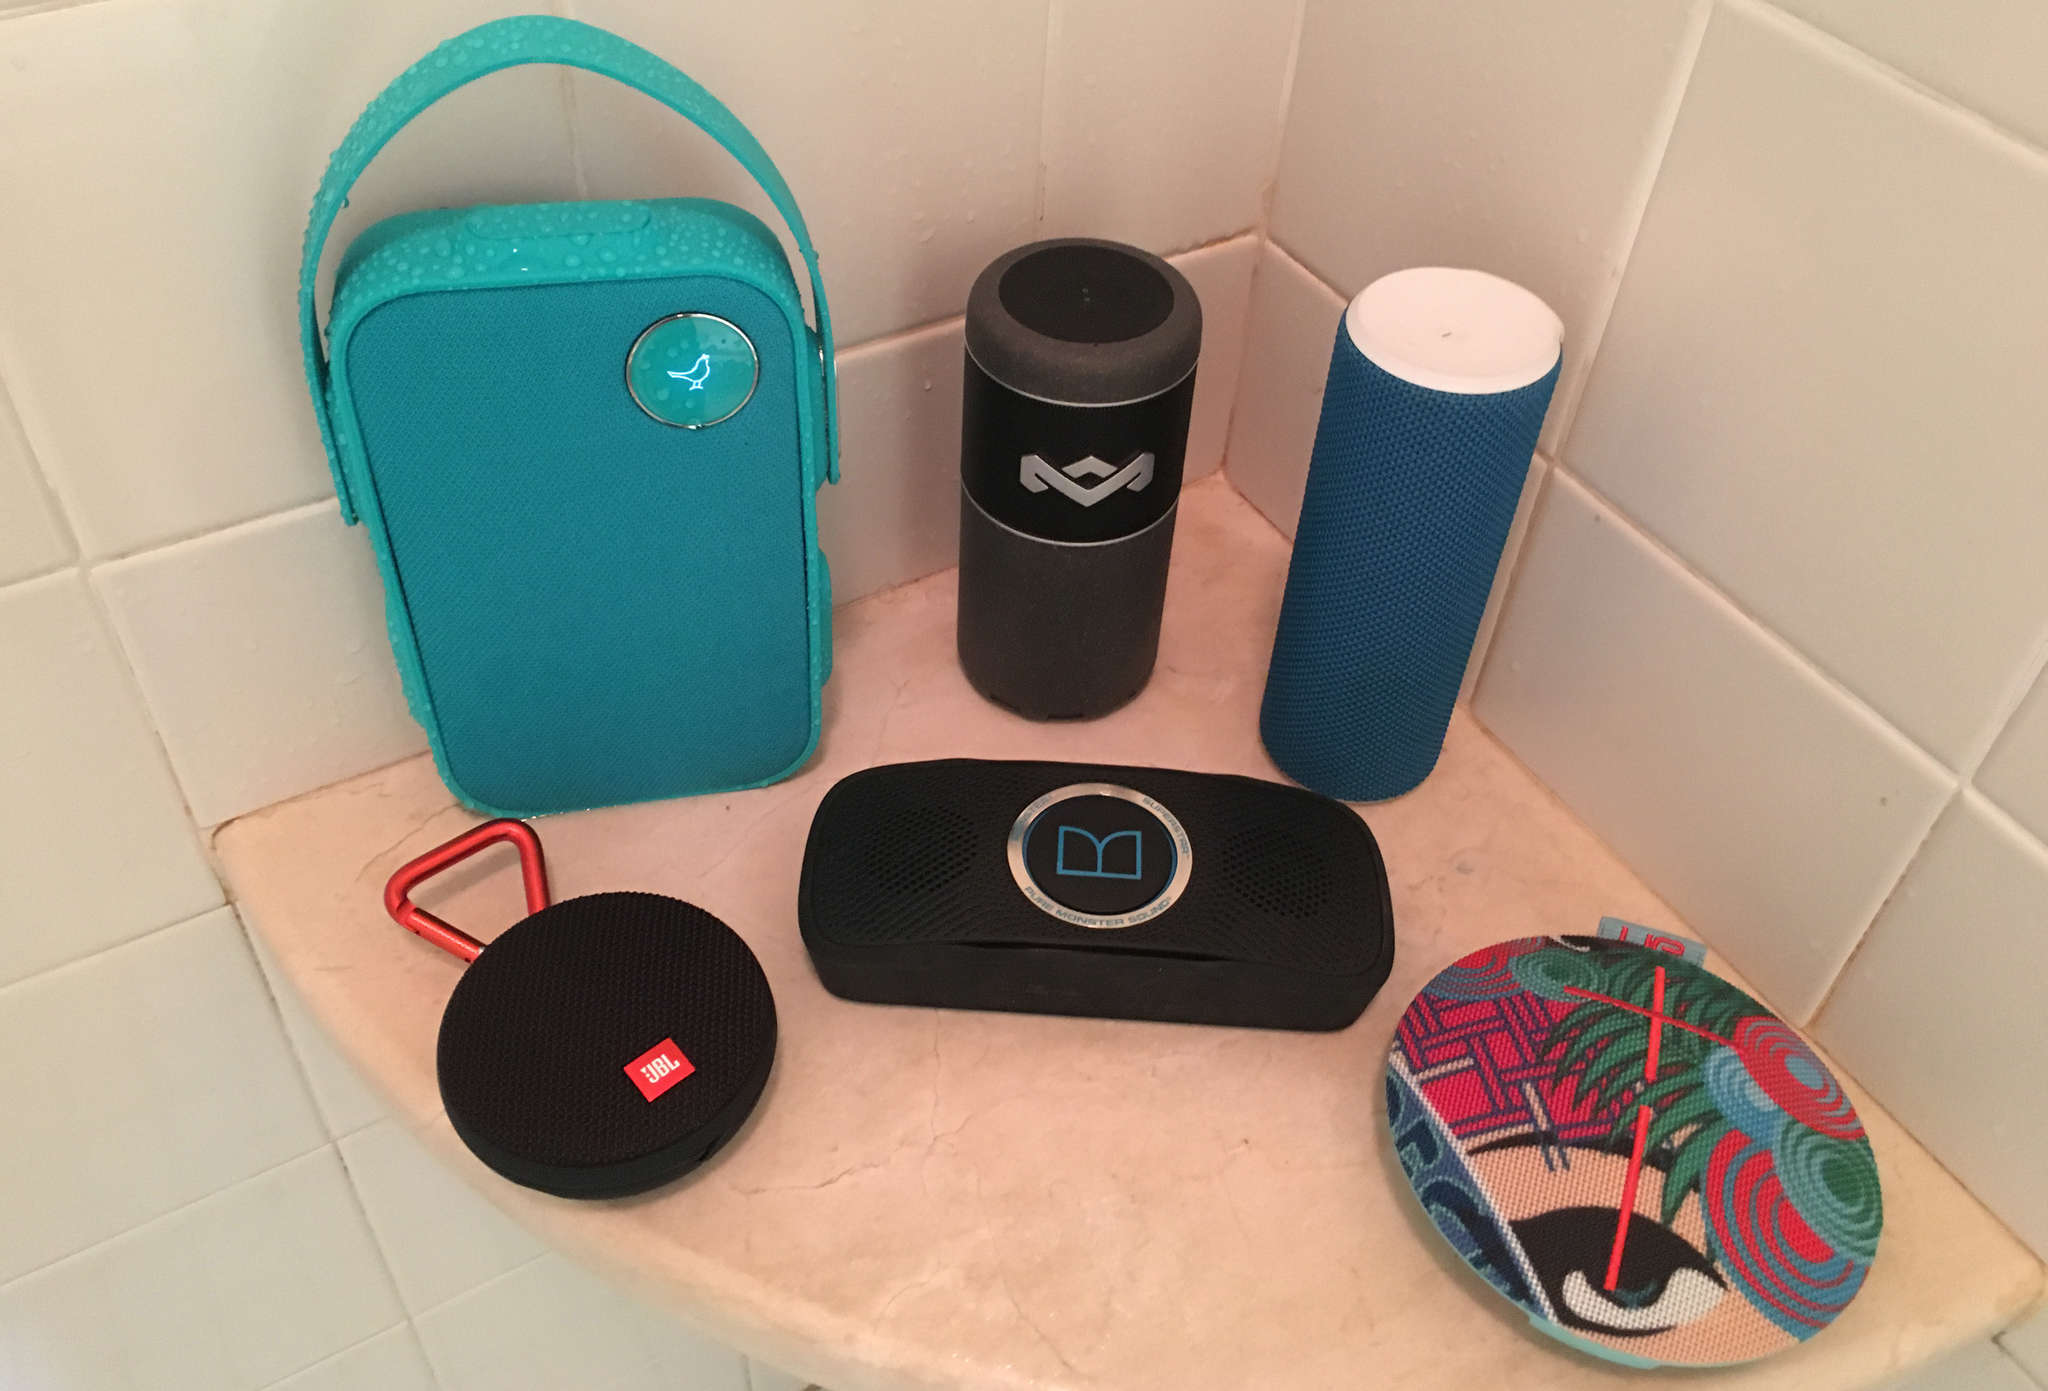 Wet and wild, water shrugging Bluetooth speakers include (back row, left) Libratone One, House of Marley Chant Sport, UE Boom, (front row, left) JBL Clip 2, Monster Superstar, and UE Roll 2.